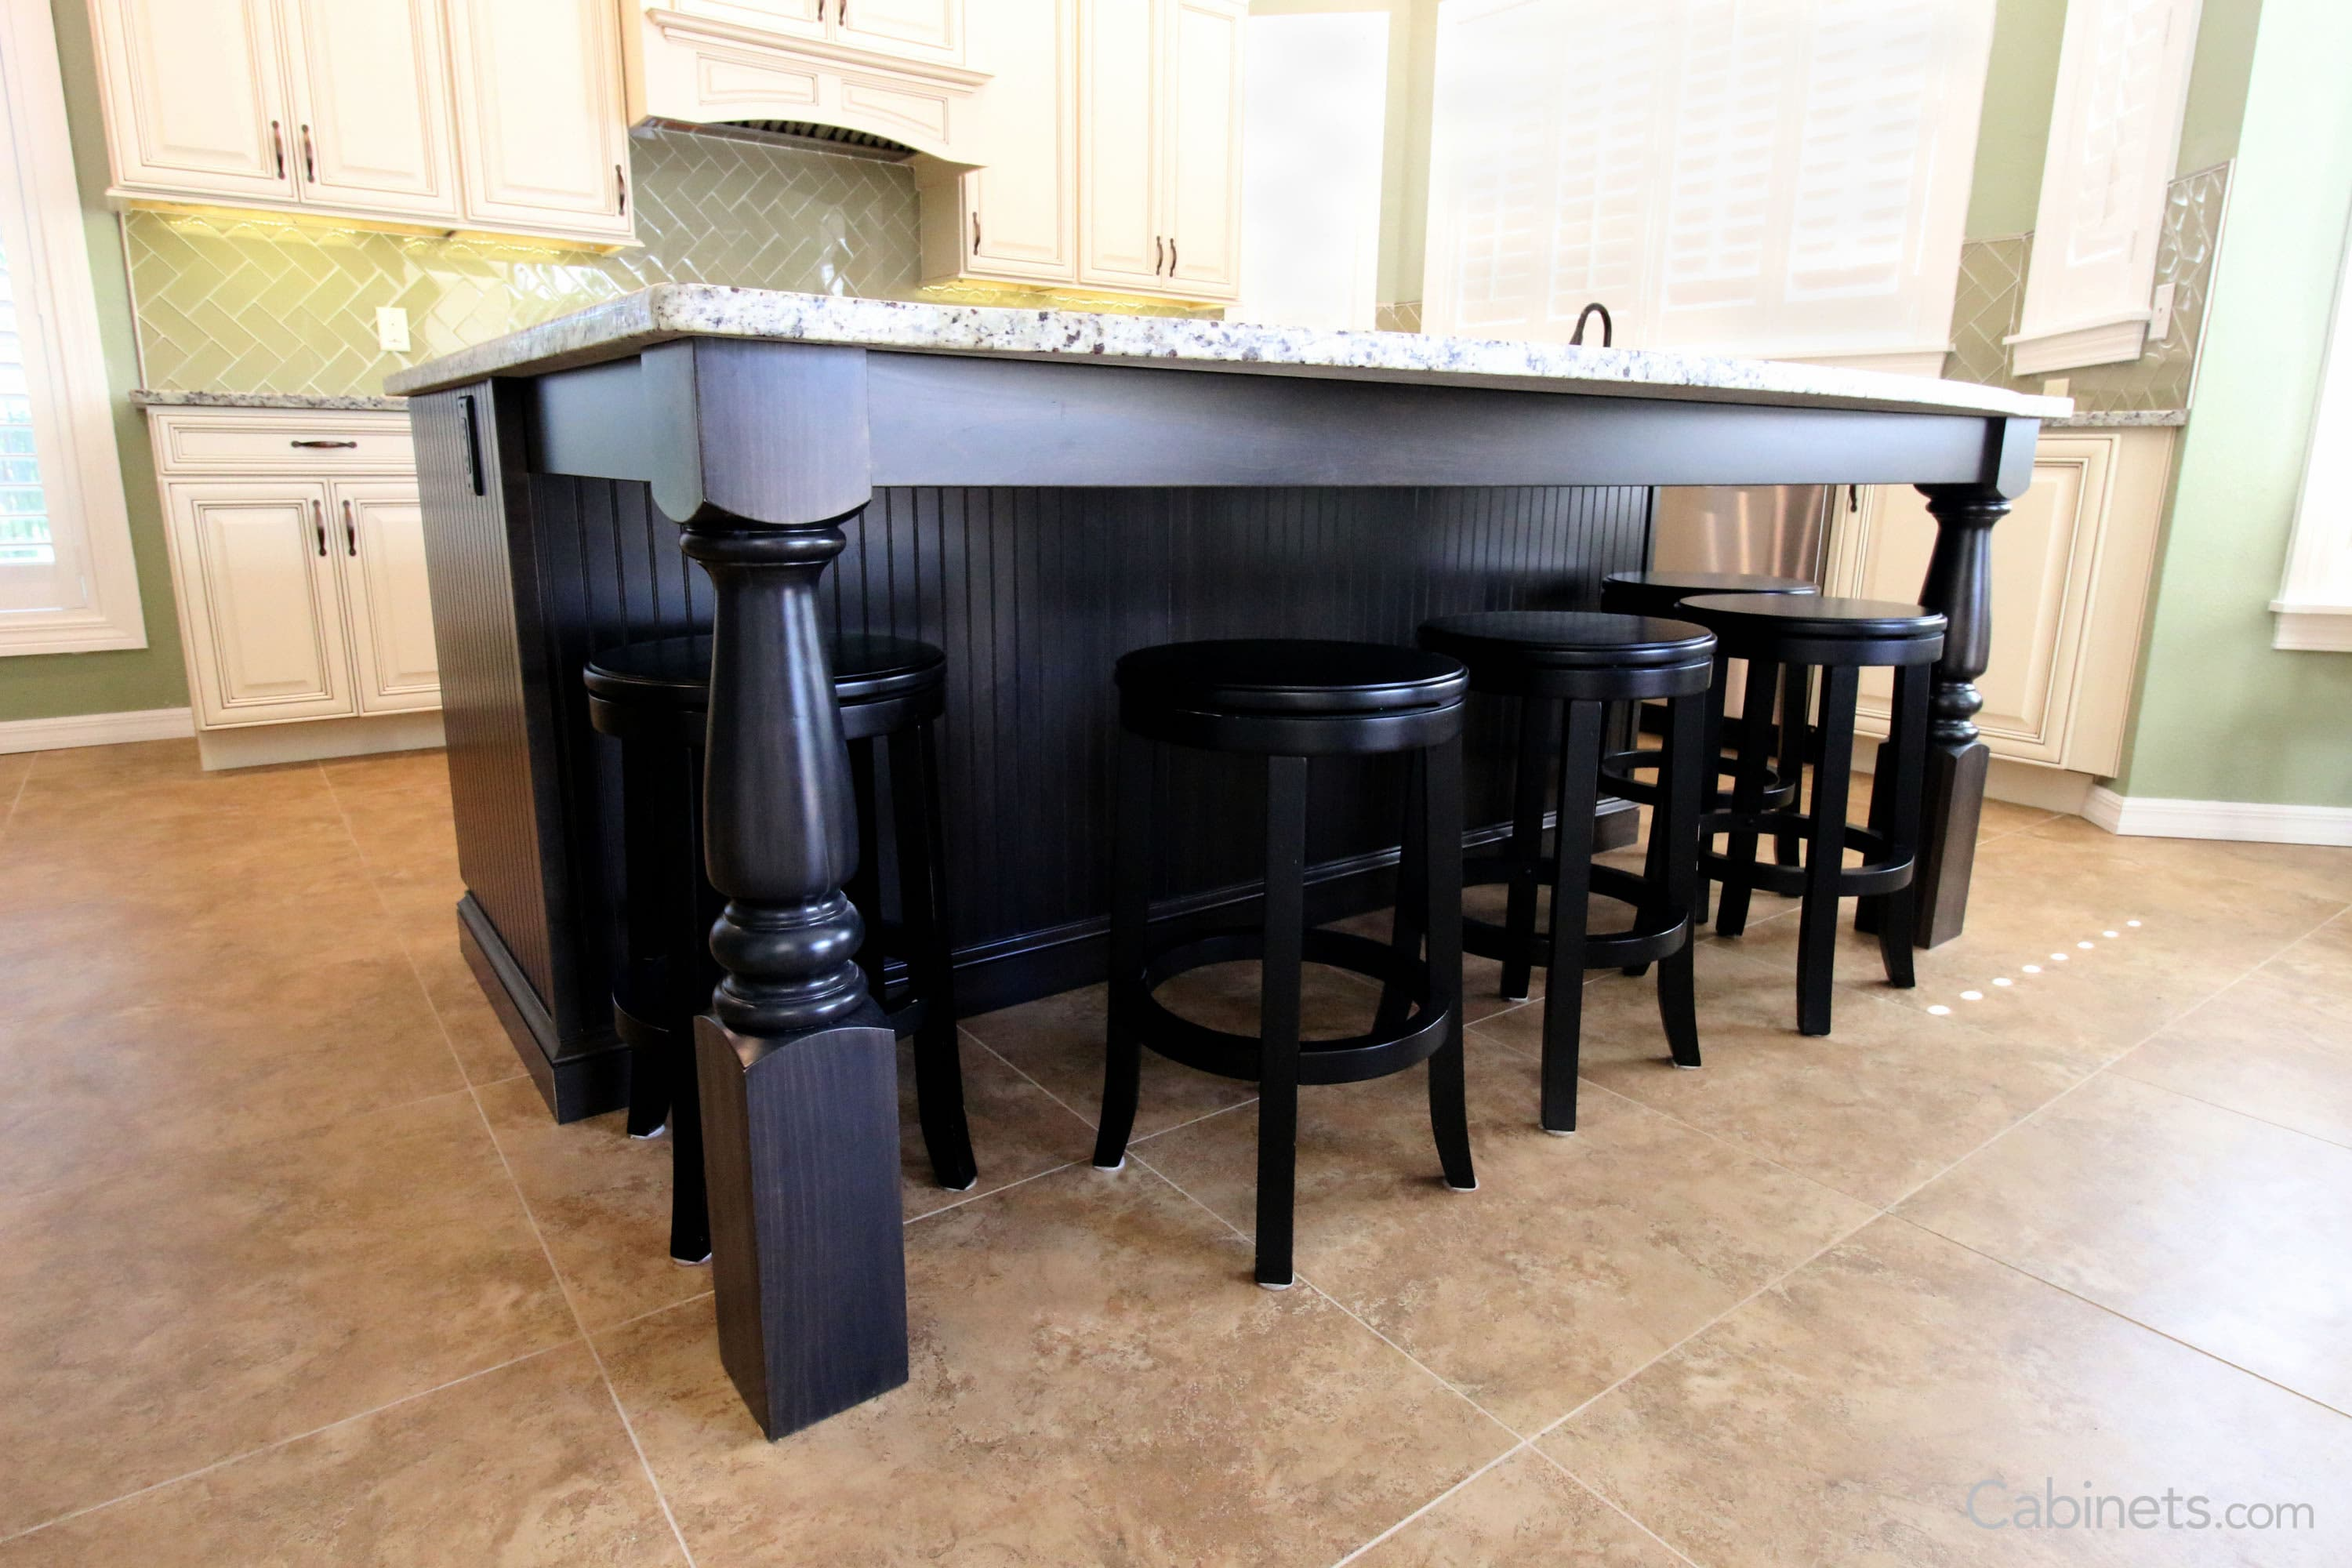 Furniture Details For Cabinetry Cabinets Com